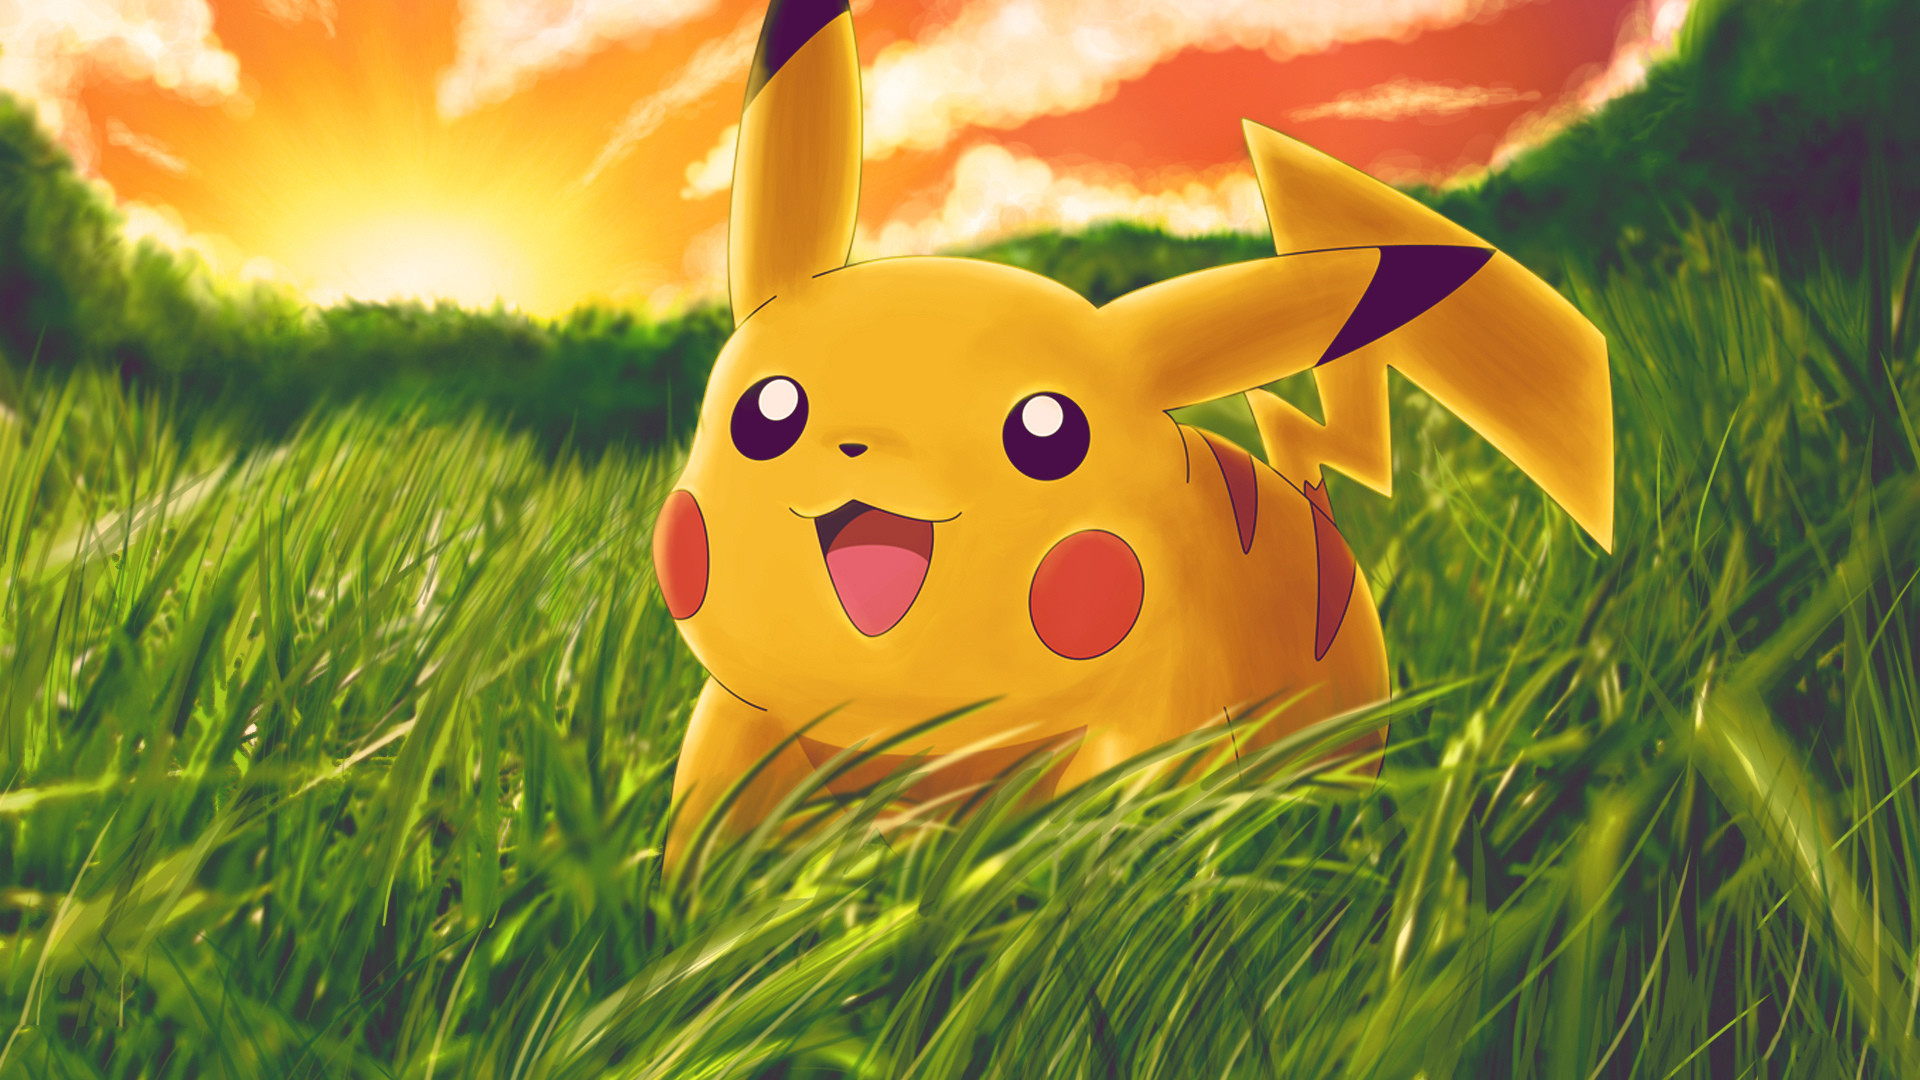 1920x1080 ... Wonderful Pikachu Photos and Pictures, Pikachu HDQ Wallpapers ...